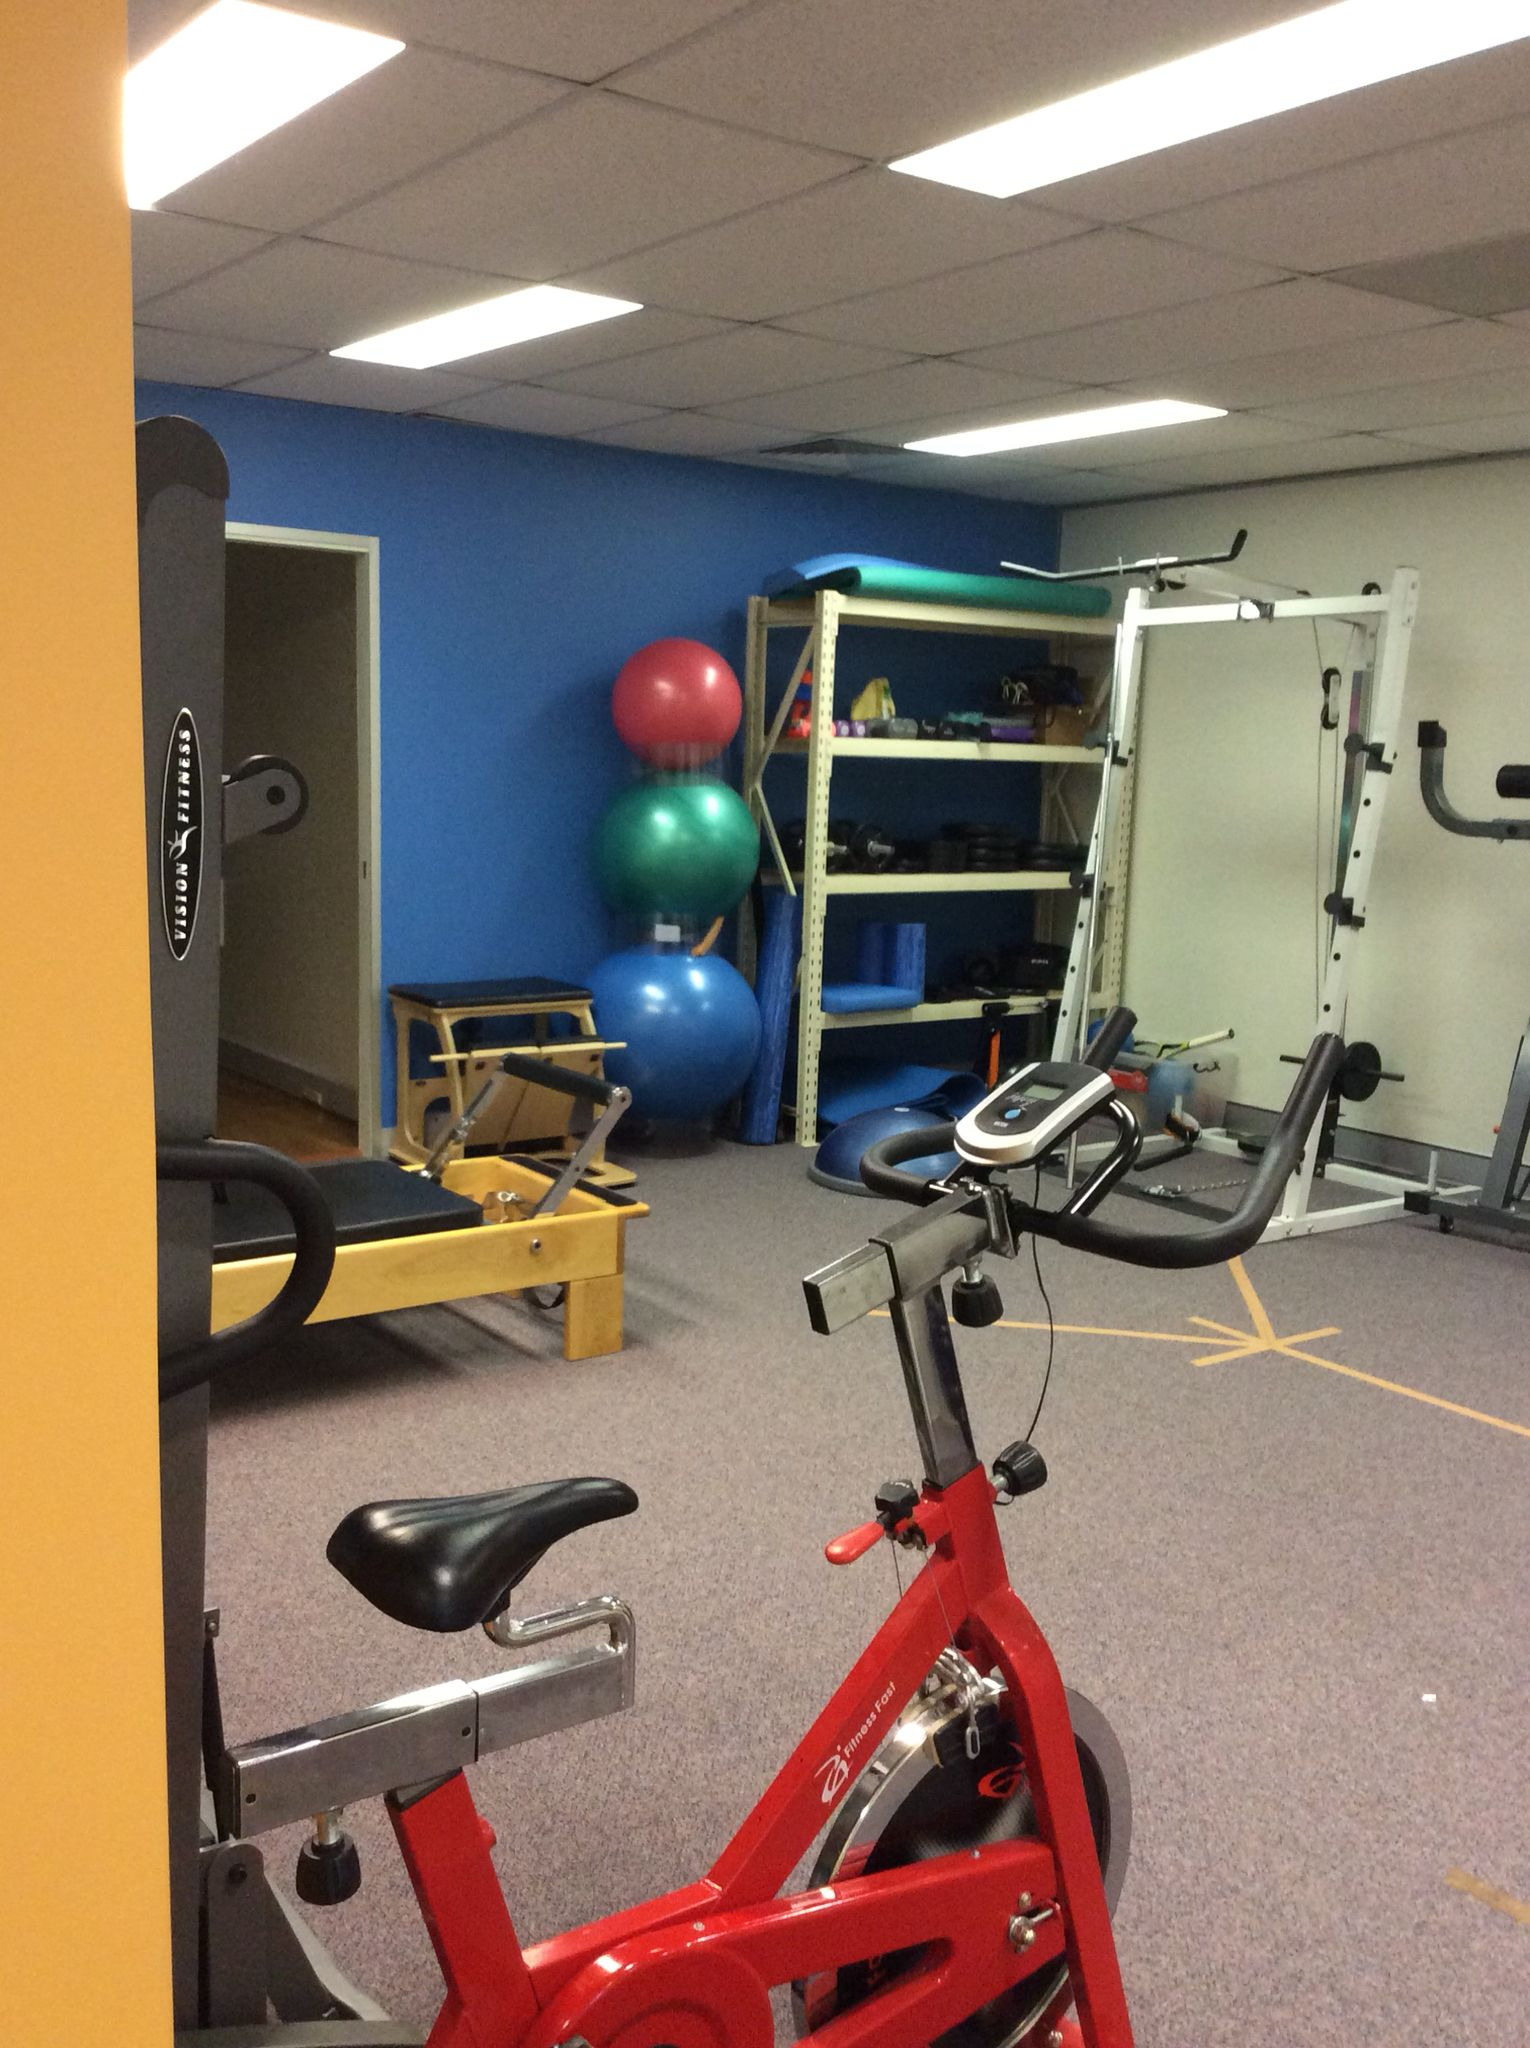 The clinic has gotten a facelift over the holidays! The